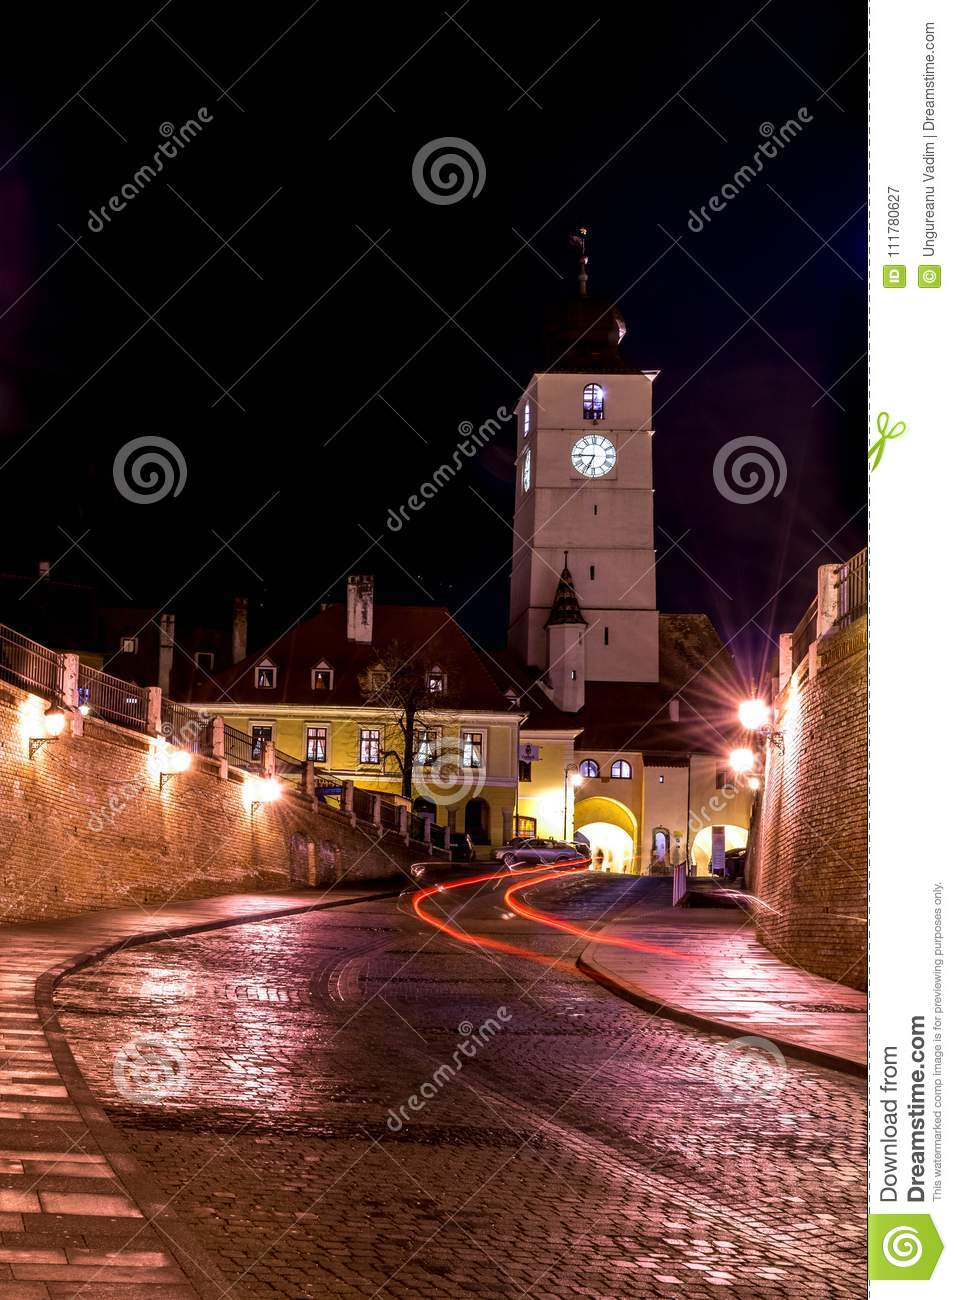 The Council Tower at night in Sibiu, Romania